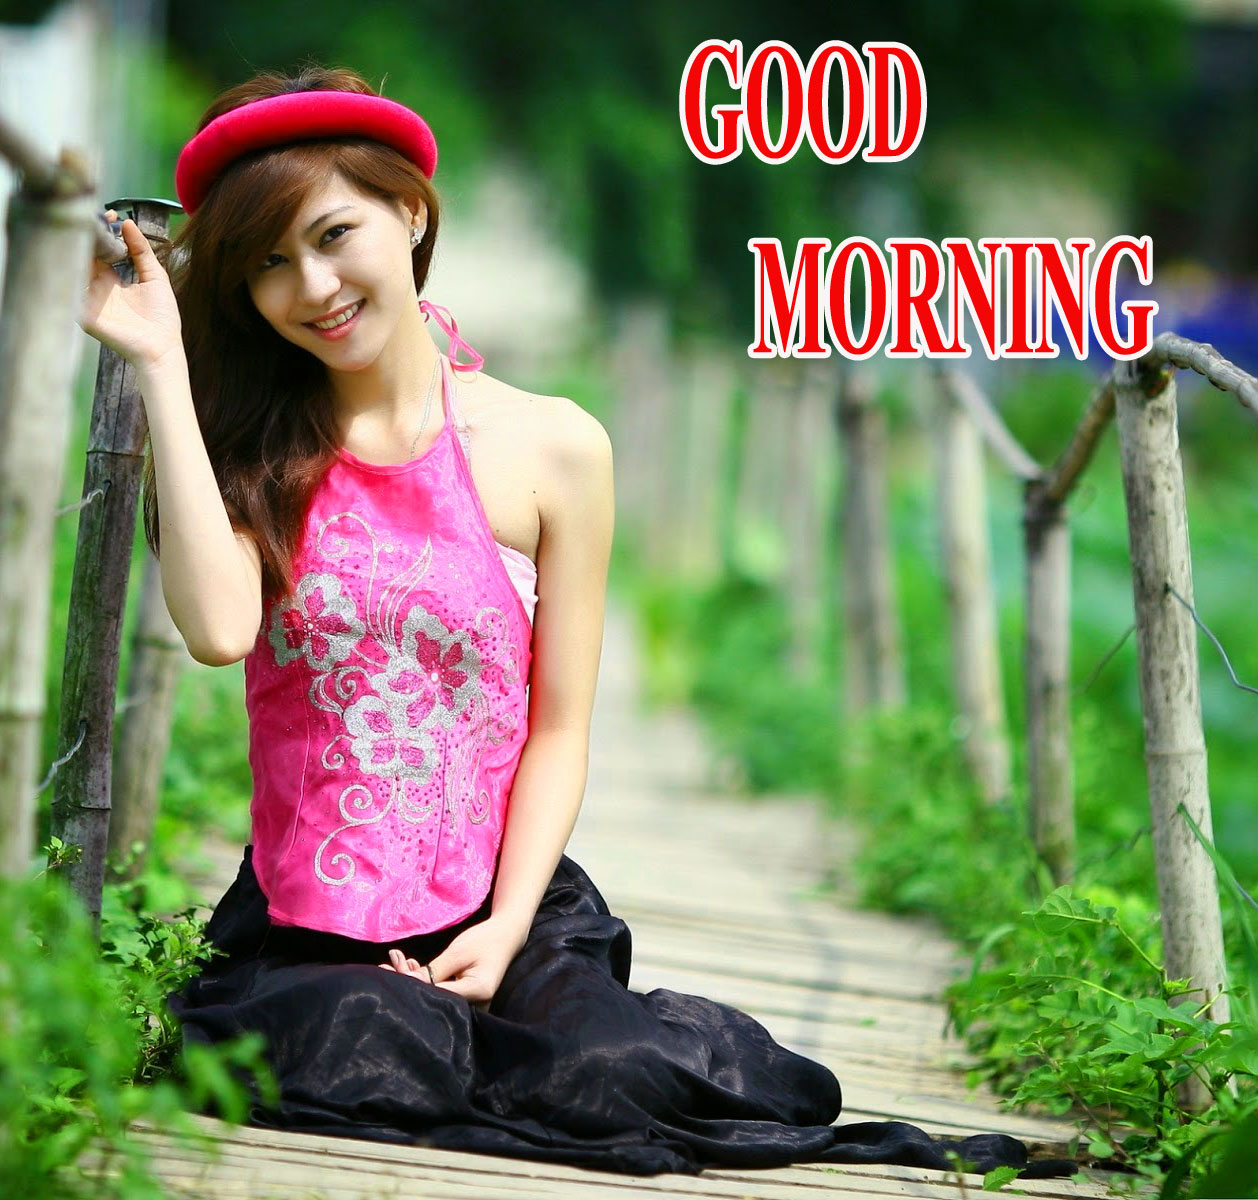 BEAUTIFUL LATEST AMAZING ALL GOOD MORNING IMAGES WALLPAPER PICS FOR FACEBOOK